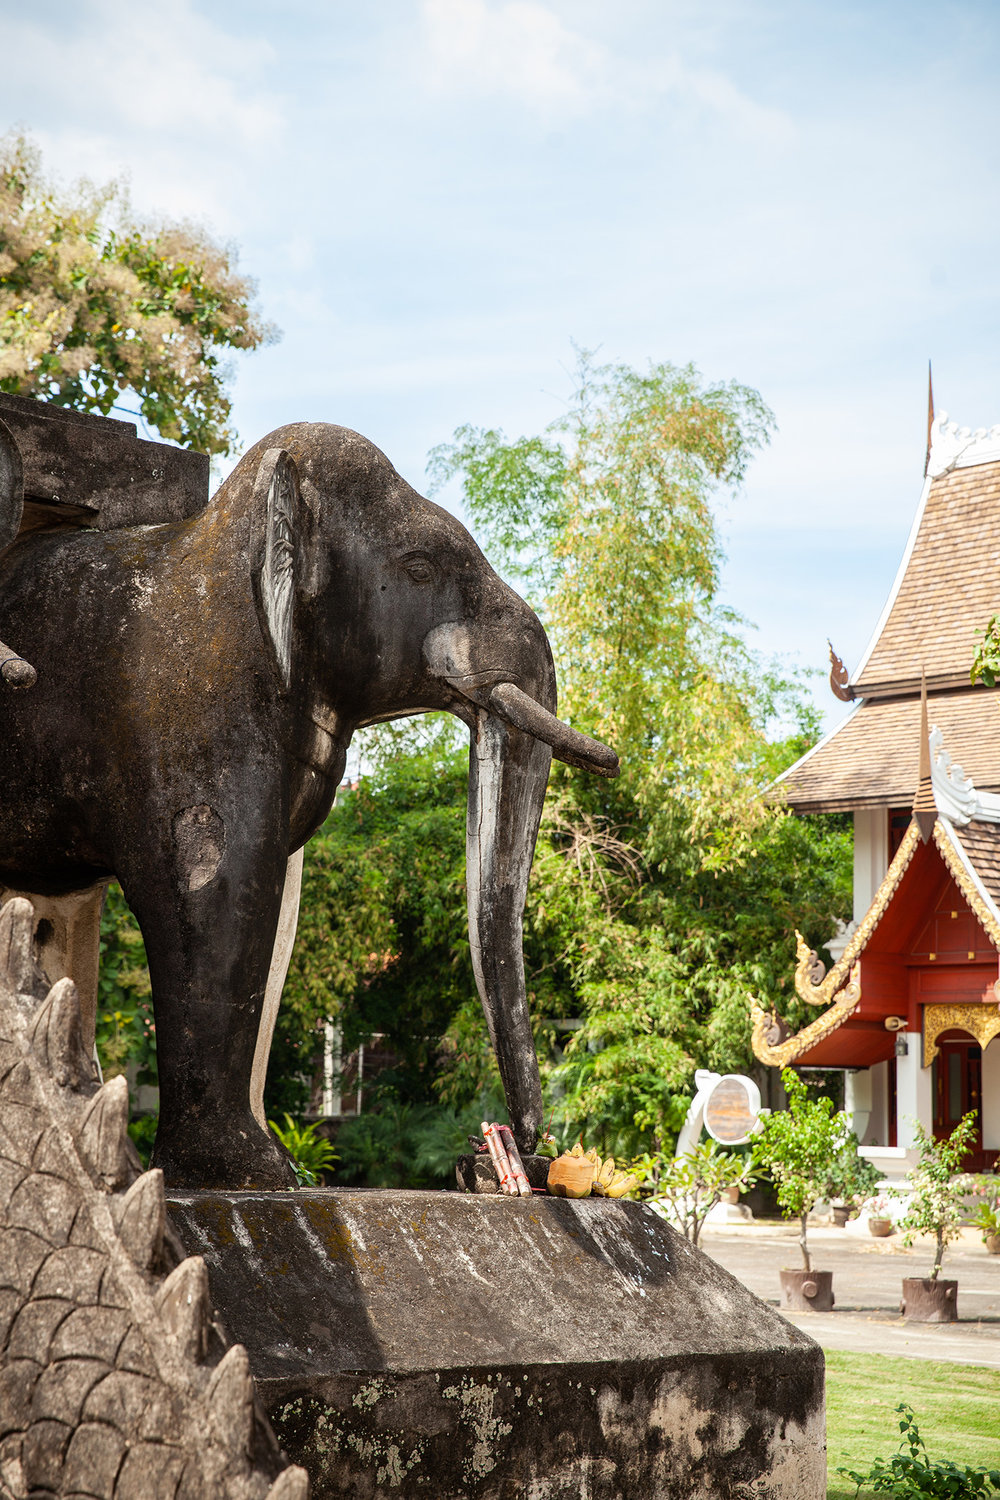 Detail of the elephants at Wat Chiang Man